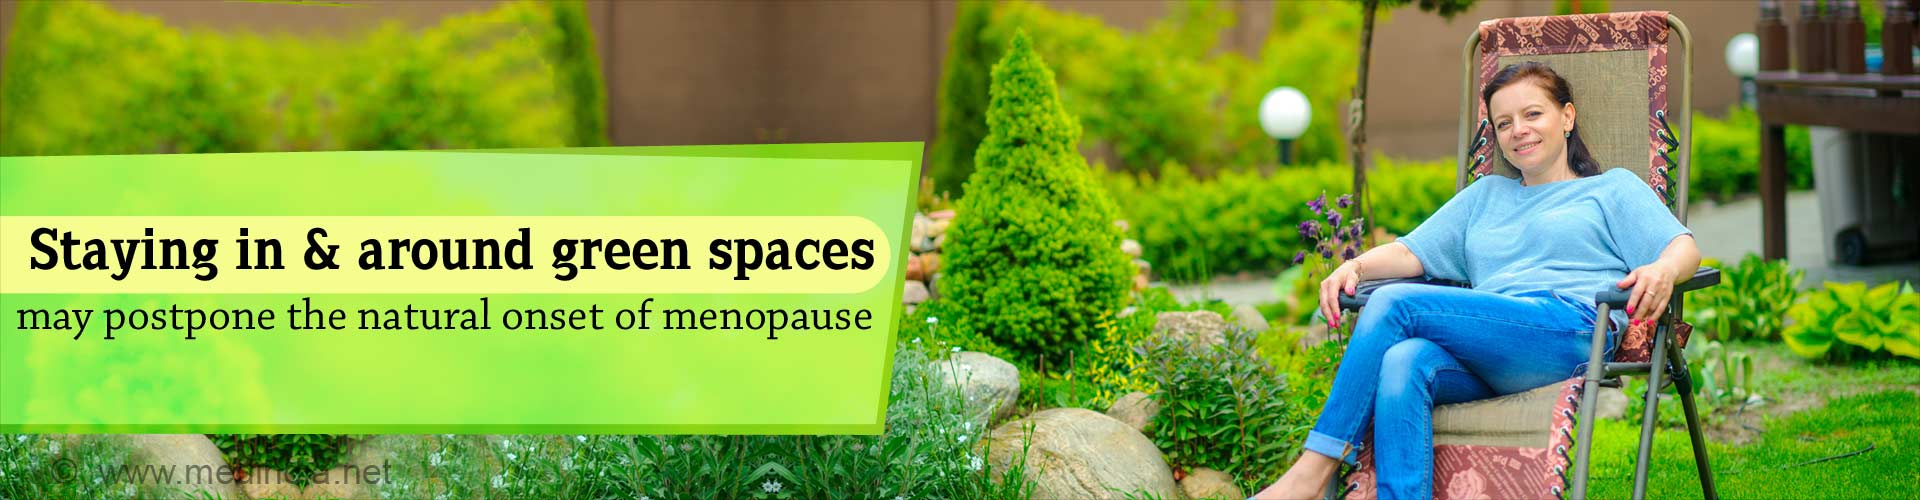 Staying in and around green spaces may postpone the natural onset of menopause.